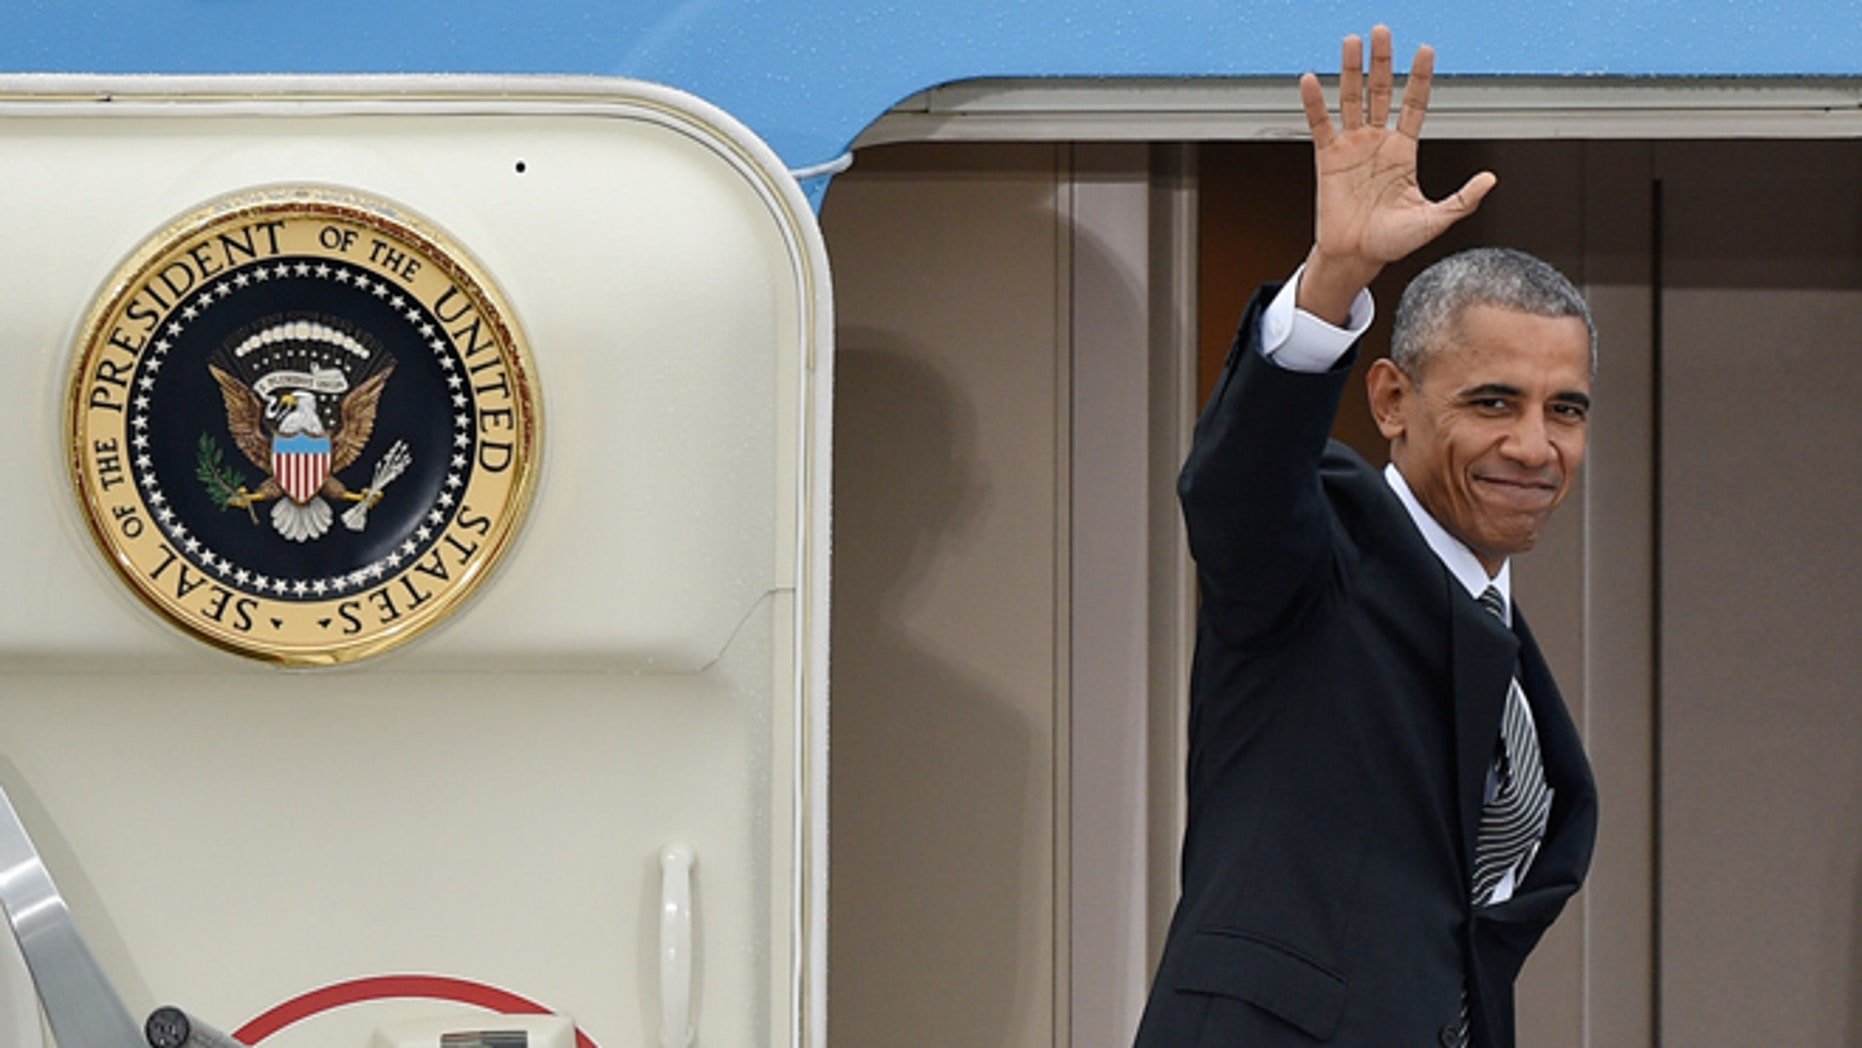 US president Barack Obama  waves as he departs from  Tegel airport in Berlin  Friday Nov. 18, 2016. Obama  met the leaders of key European countries to discuss an array of security and economic challenges facing the trans-Atlantic partners as the U.S. prepares for President-elect Donald Trump to take office in January. (Rainer Jensen/dpa via AP)